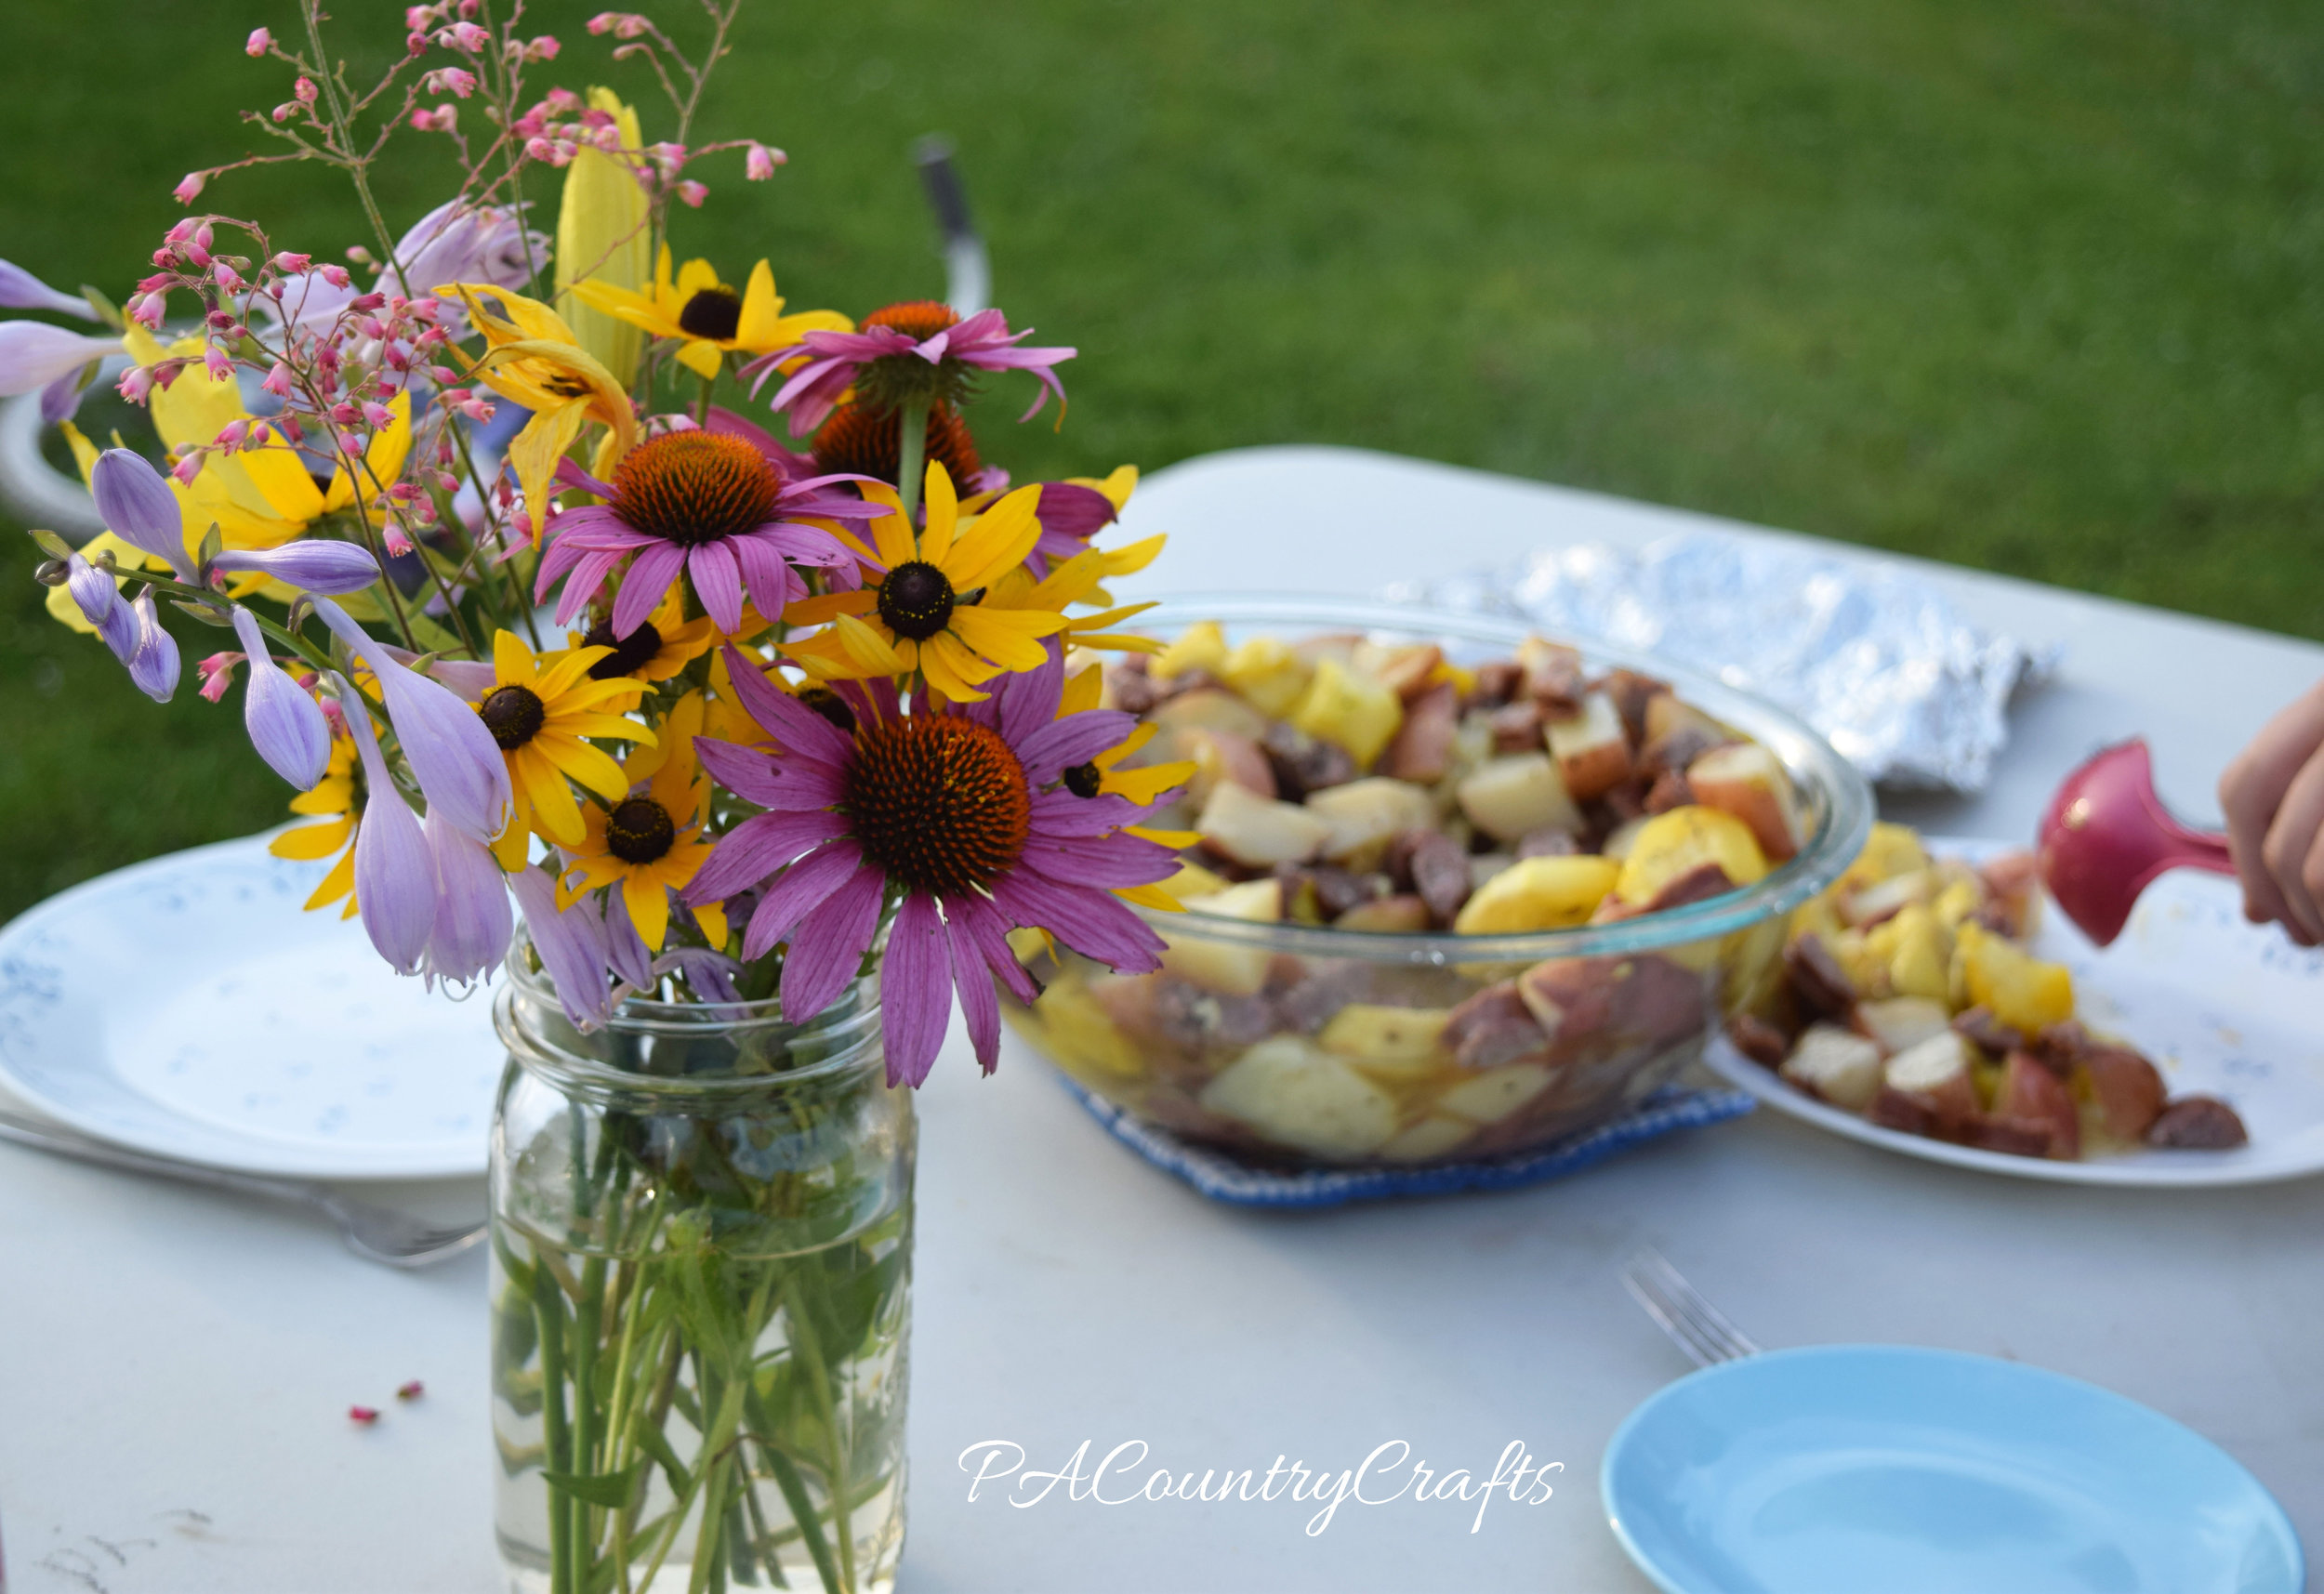 picnic and flowers